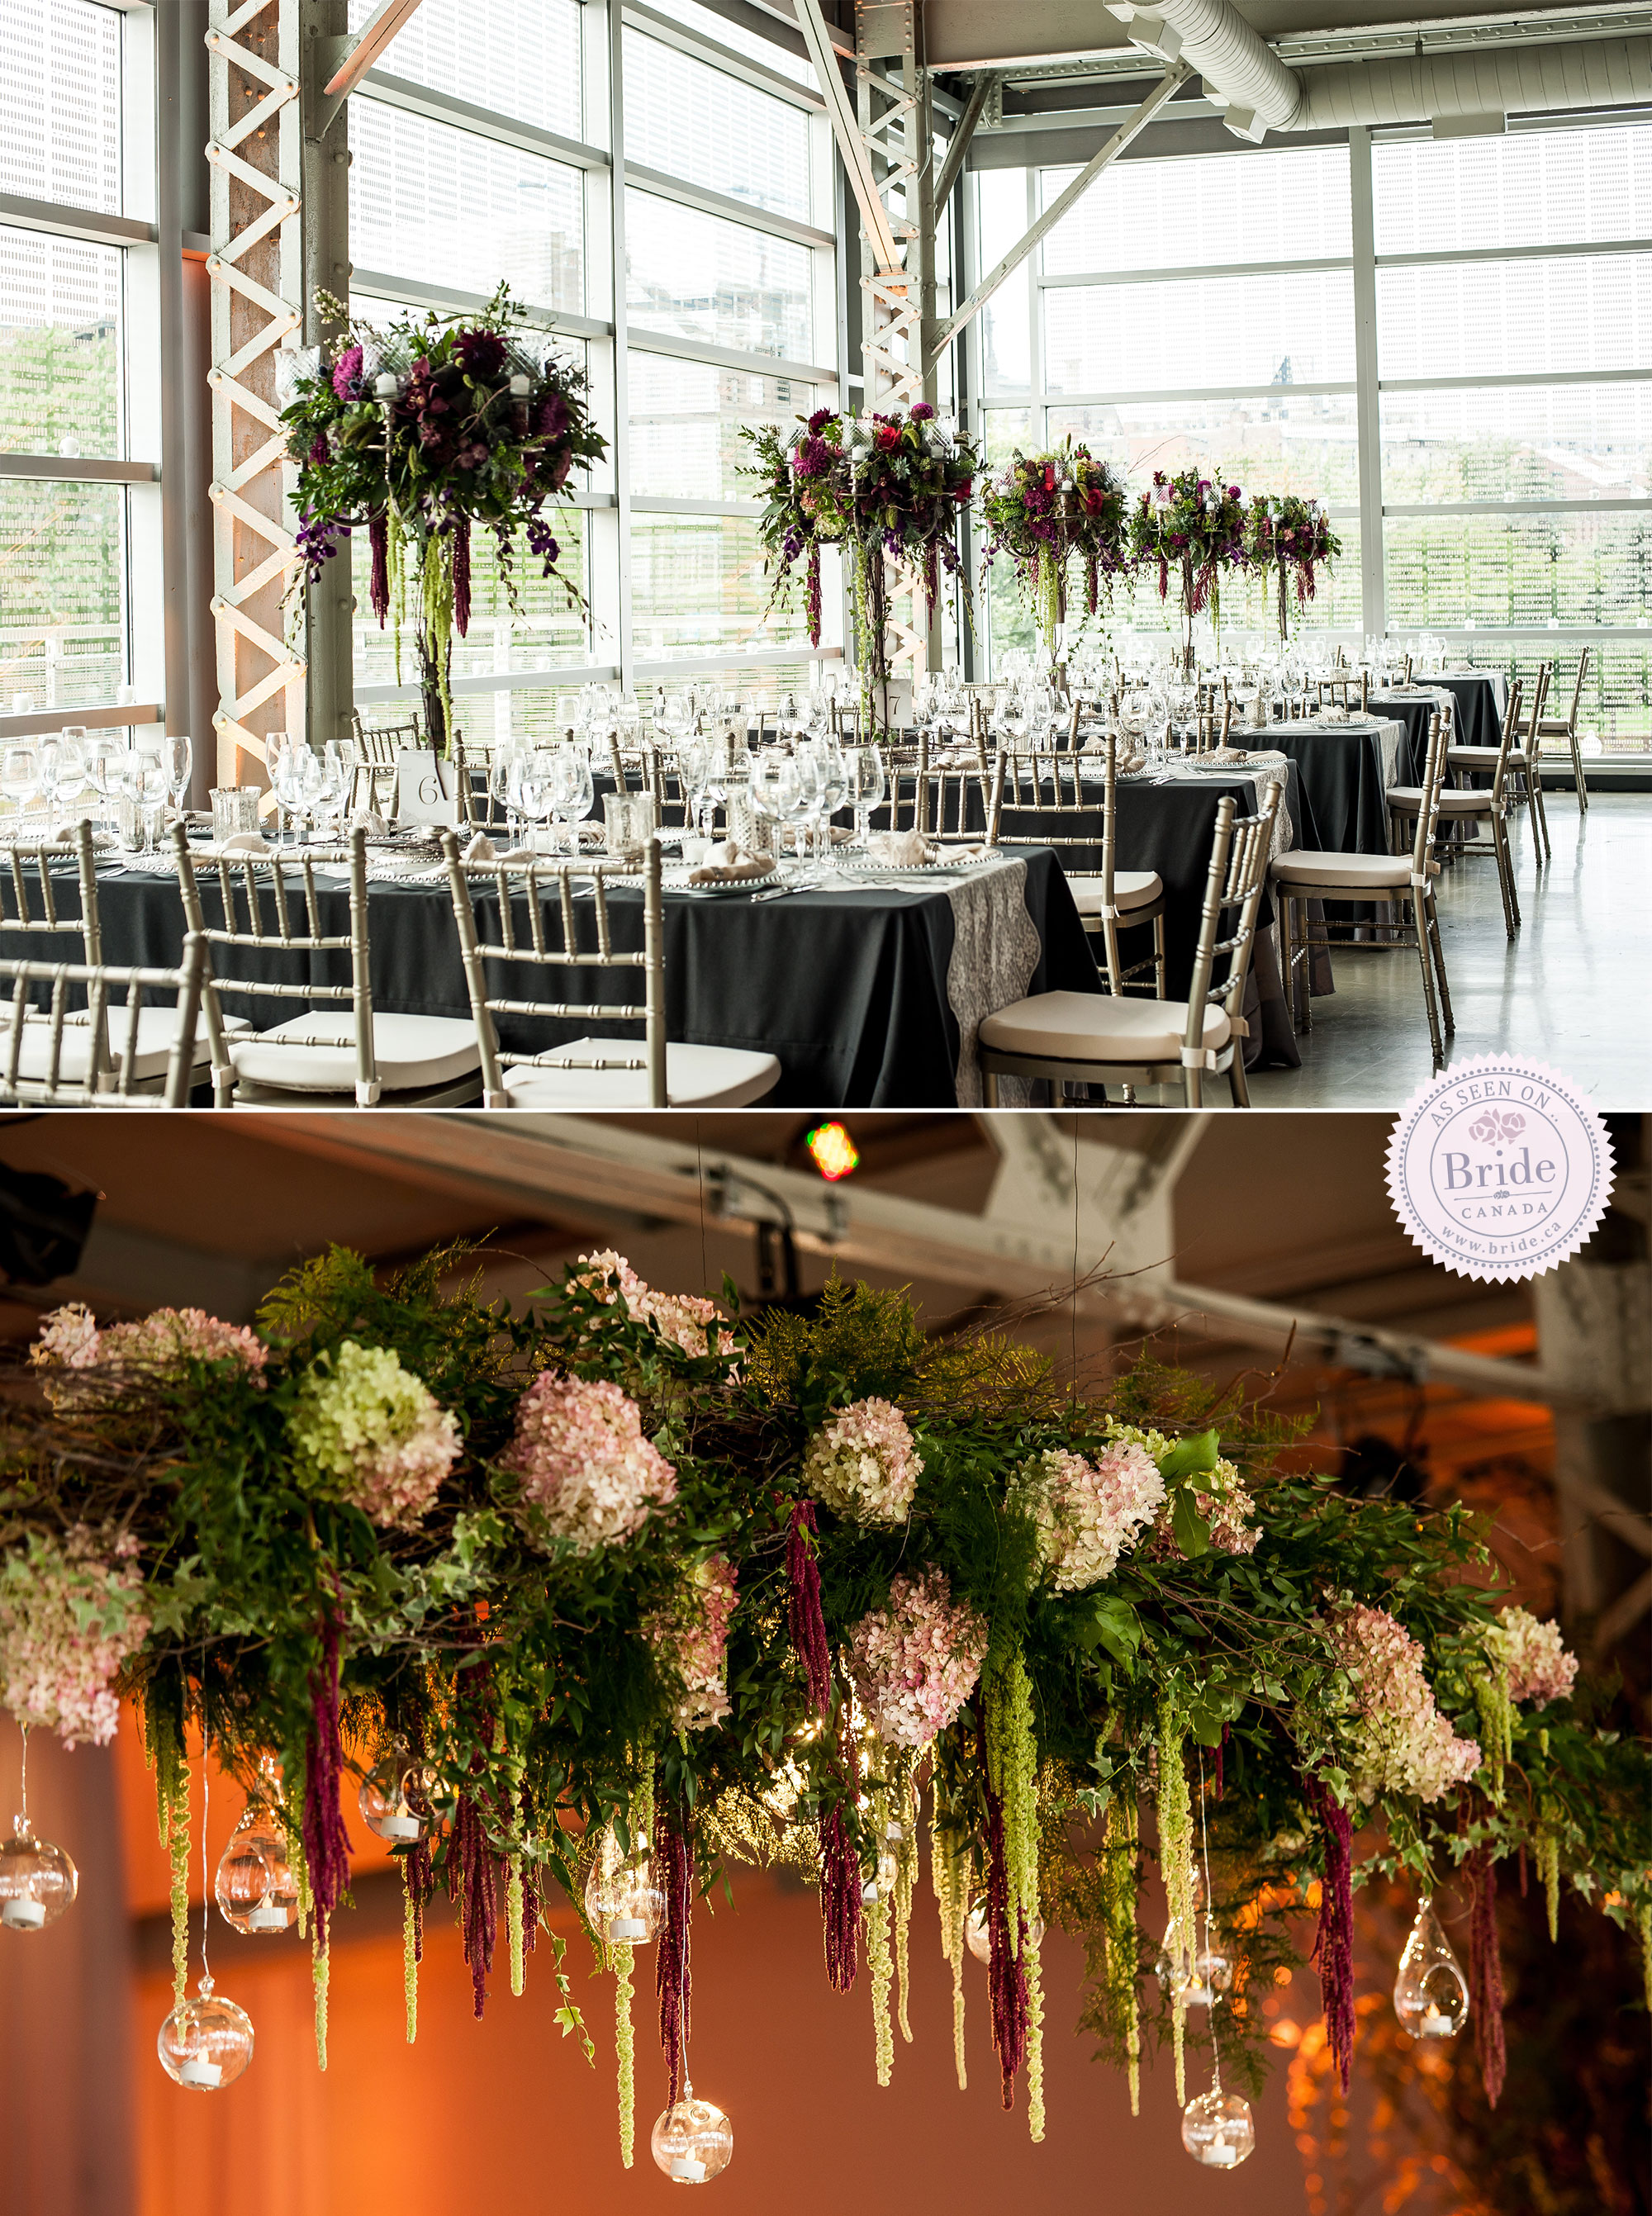 Bride wedding planning coordinating this floral design by fleurs des jardins is simply breathtaking as is the overall design junglespirit Gallery